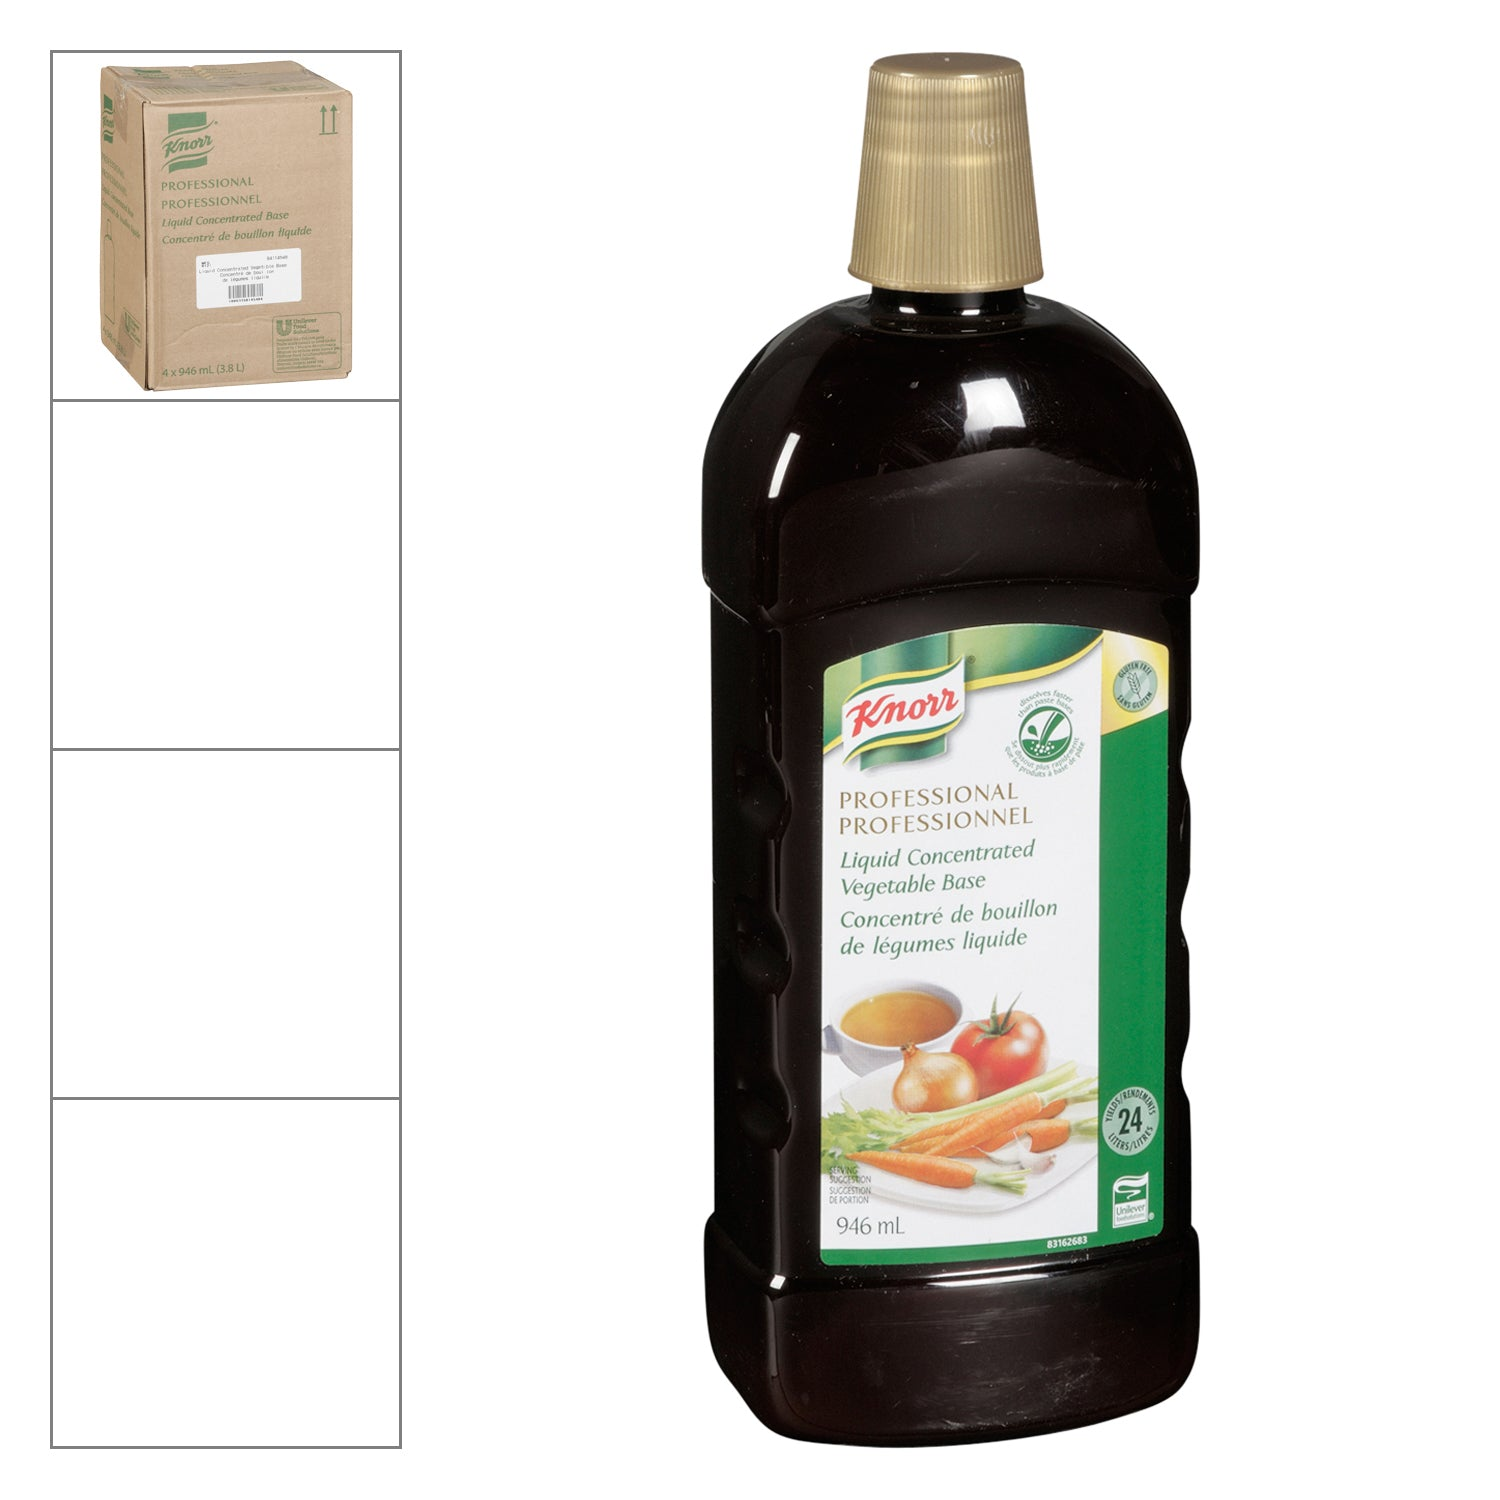 Knorr Professional Concentrated Liquid Vegetable Base 946 ml - 4 Pack [$15.00/each]